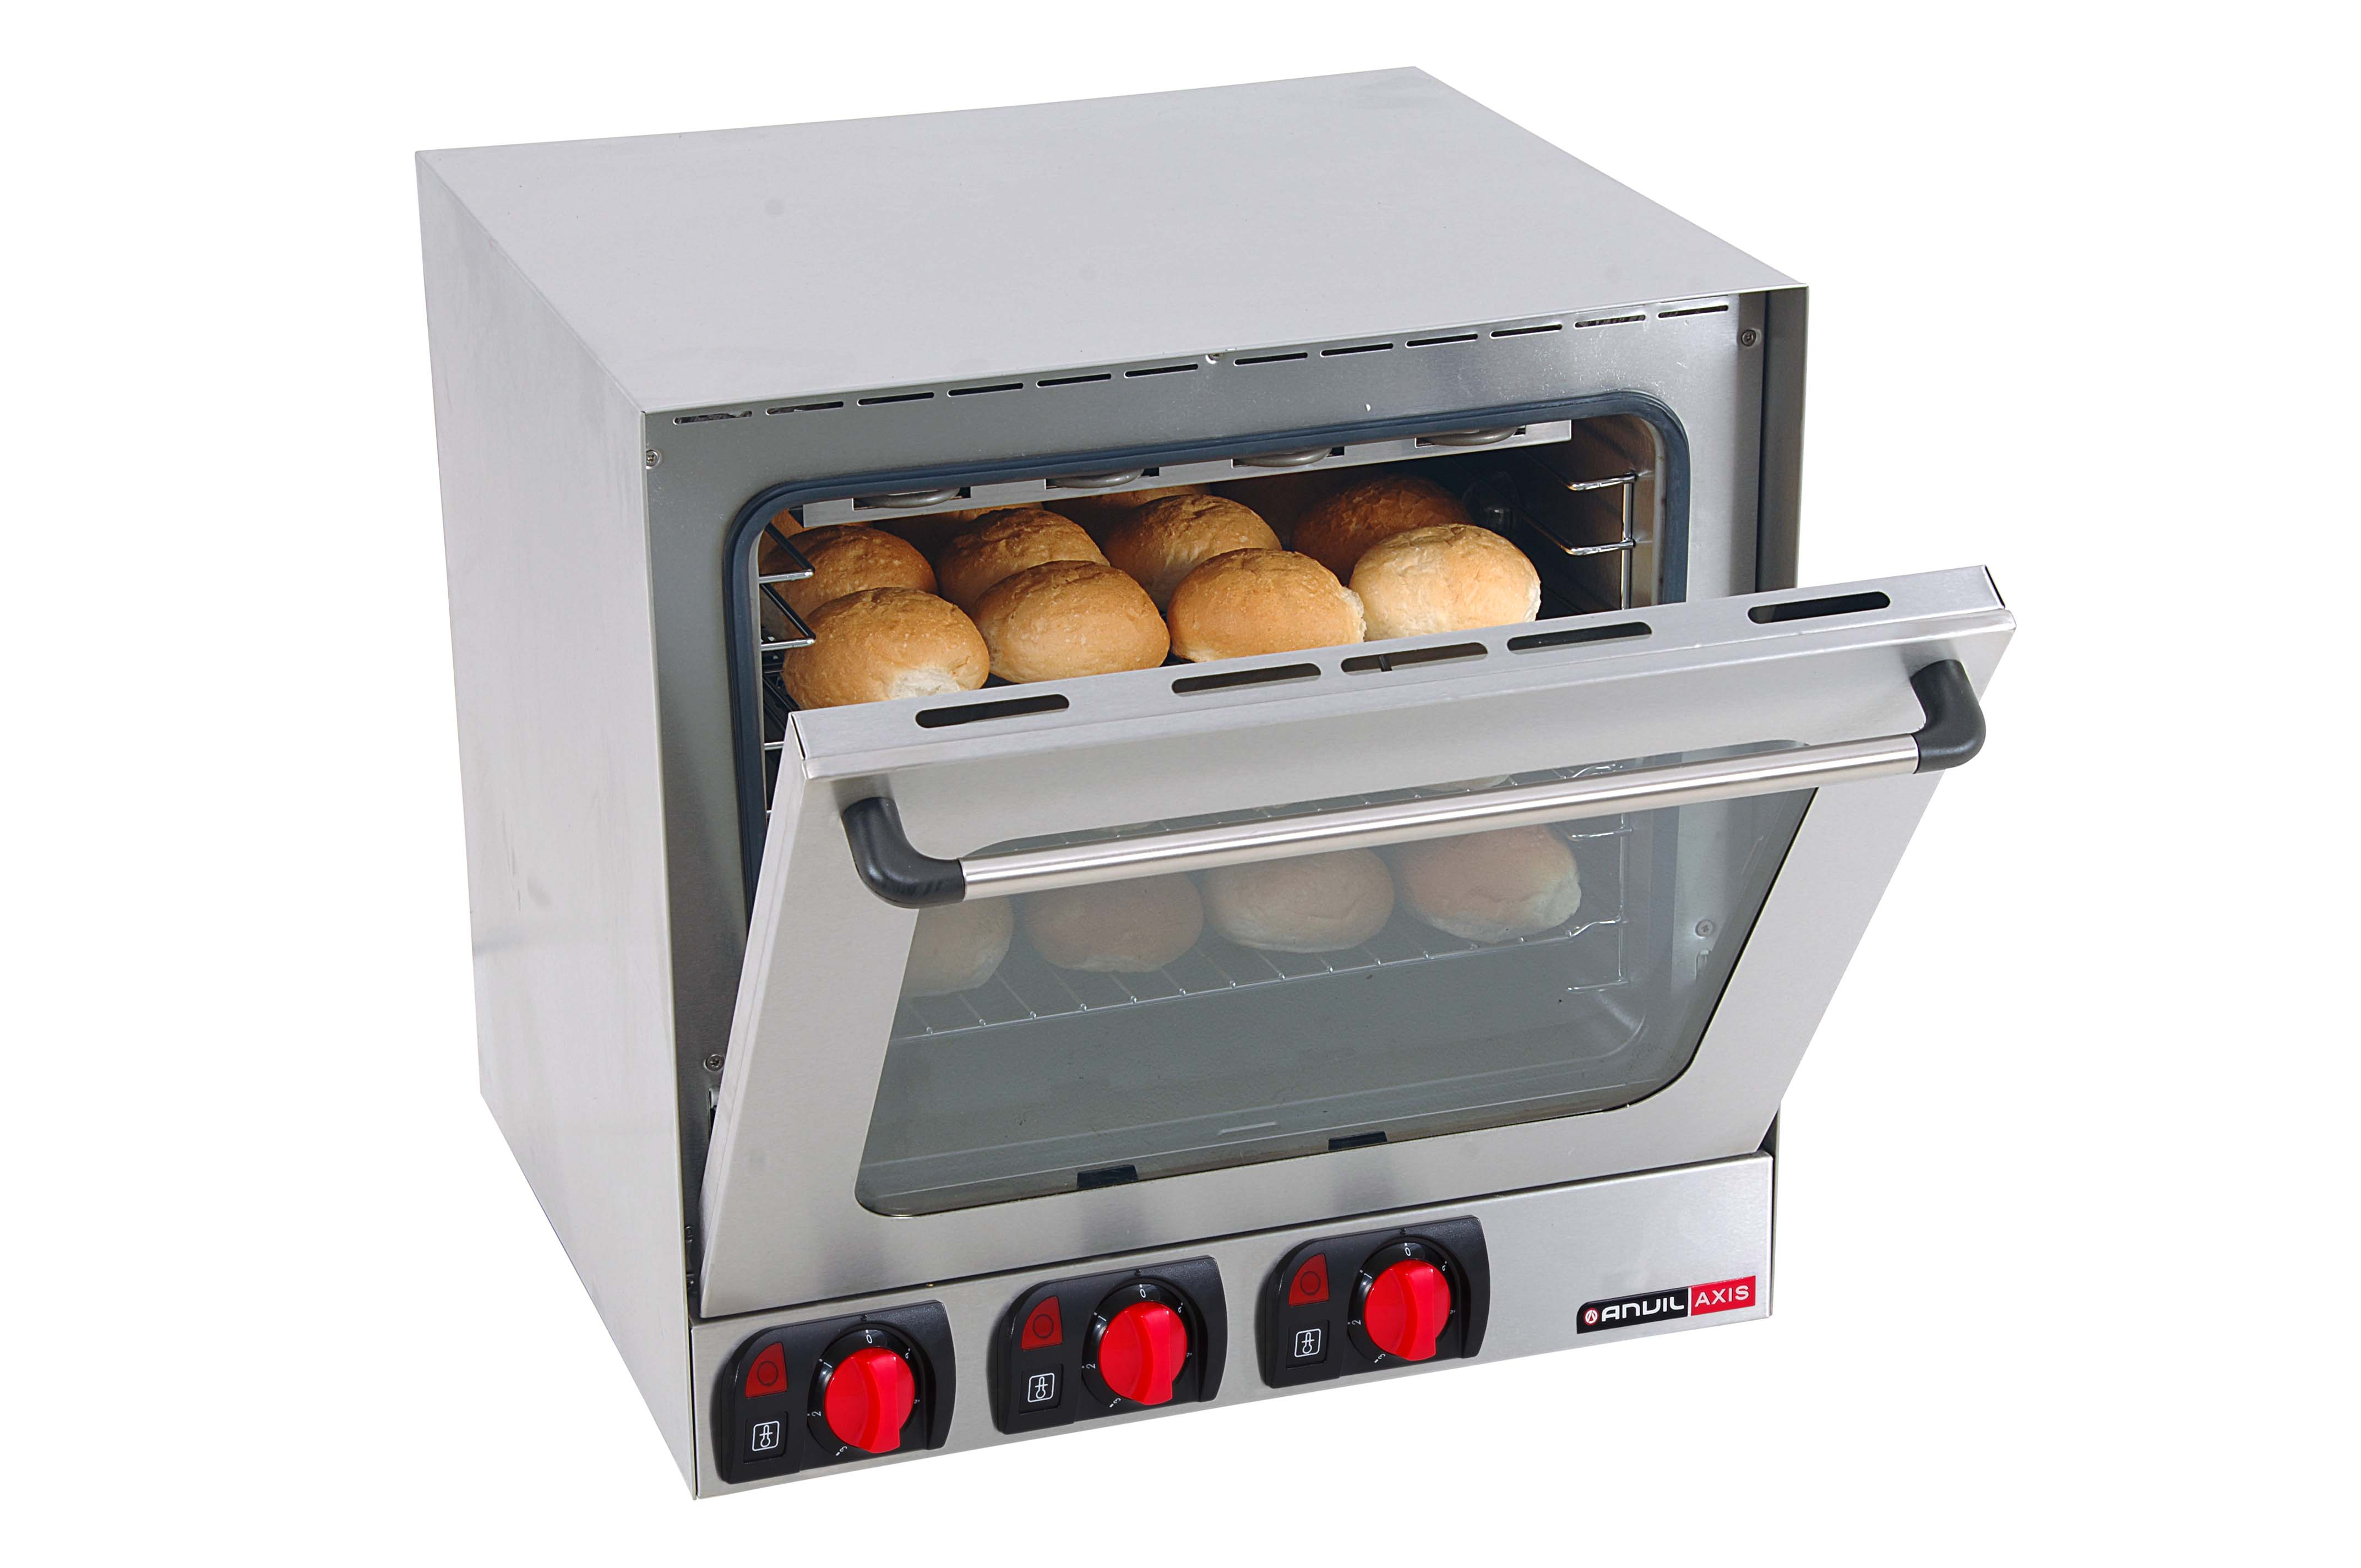 coa1004--convection-oven-anvil--prima-pro-grill-&amp-timer